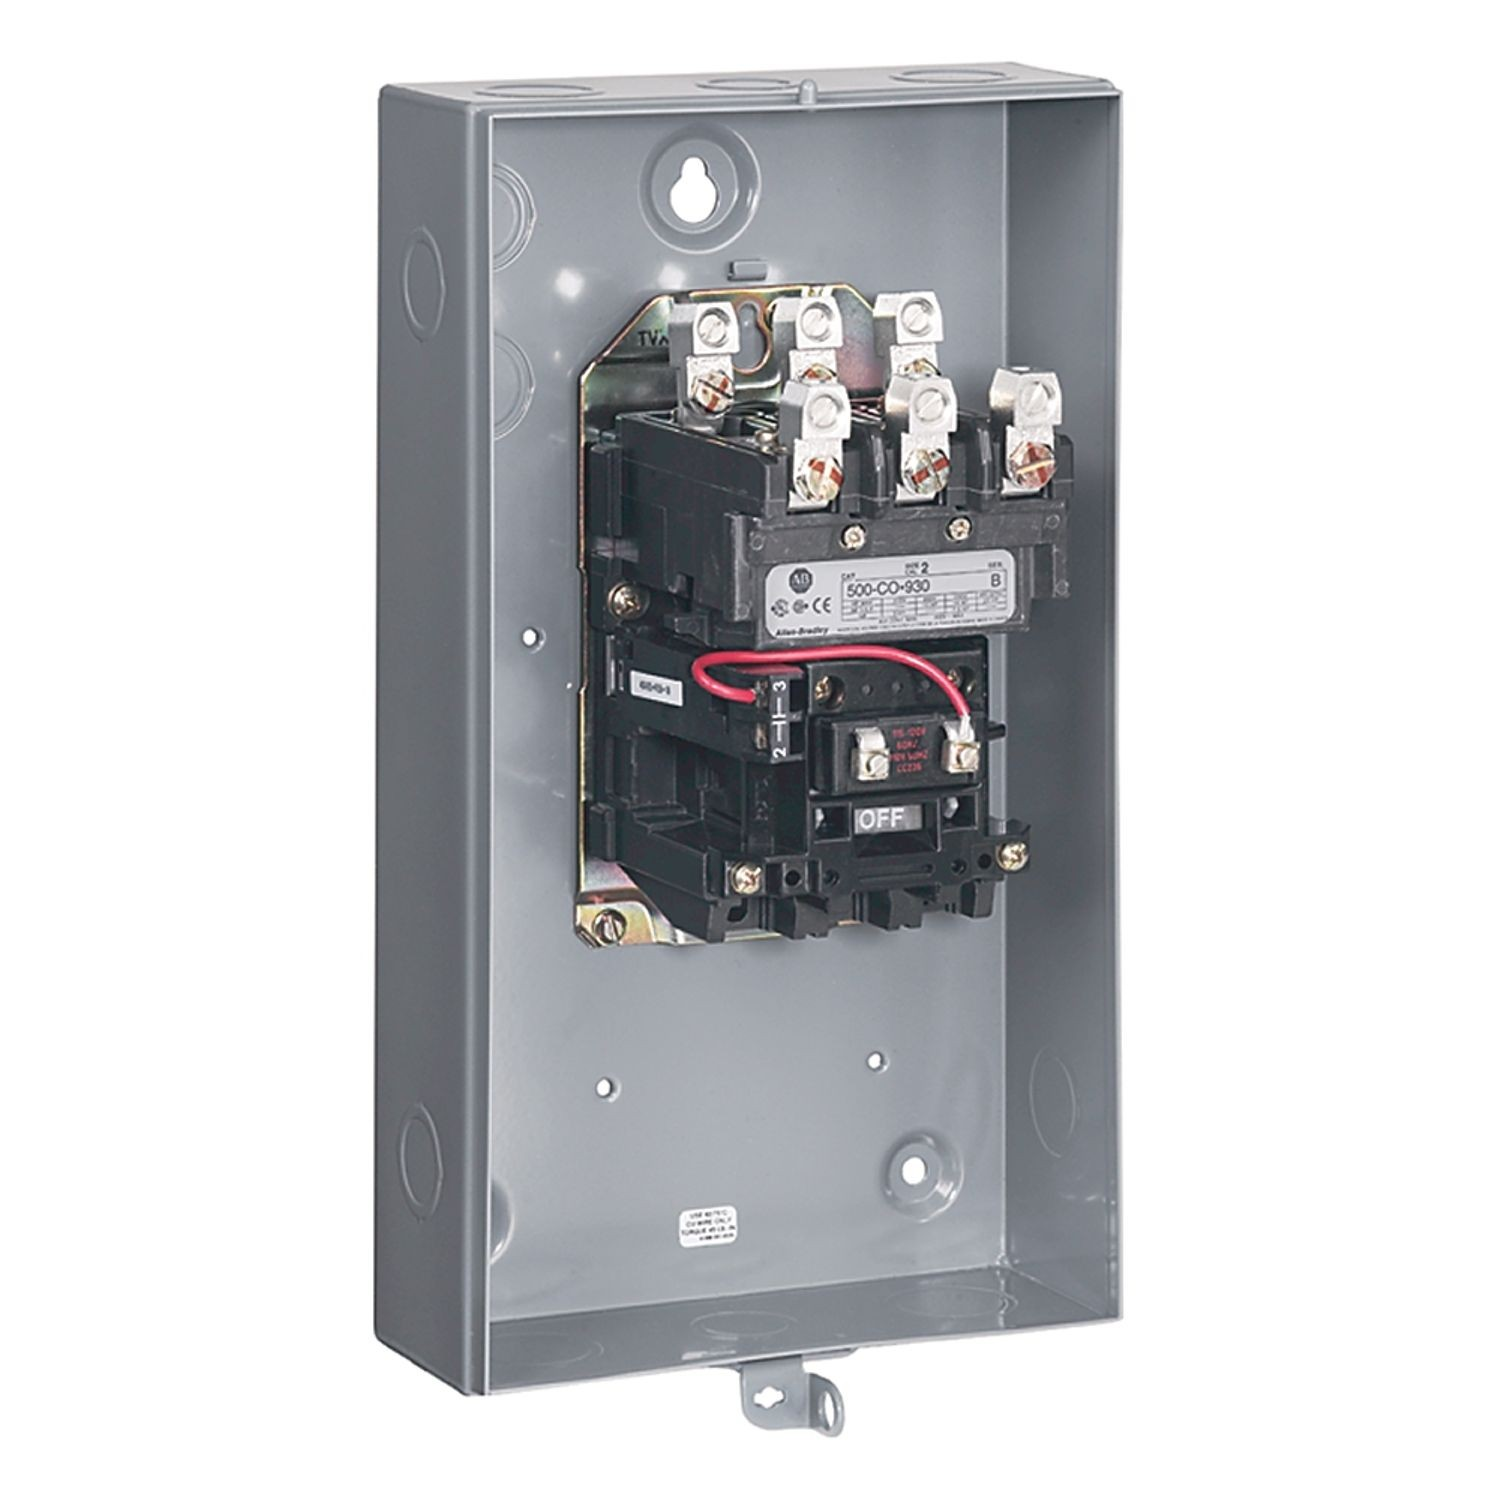 hight resolution of allen bradley 500 tad930 available from rcc nema contactor motor loads top wiring size 00 115 120v 60hz type 1 general purpose hinge enclosure